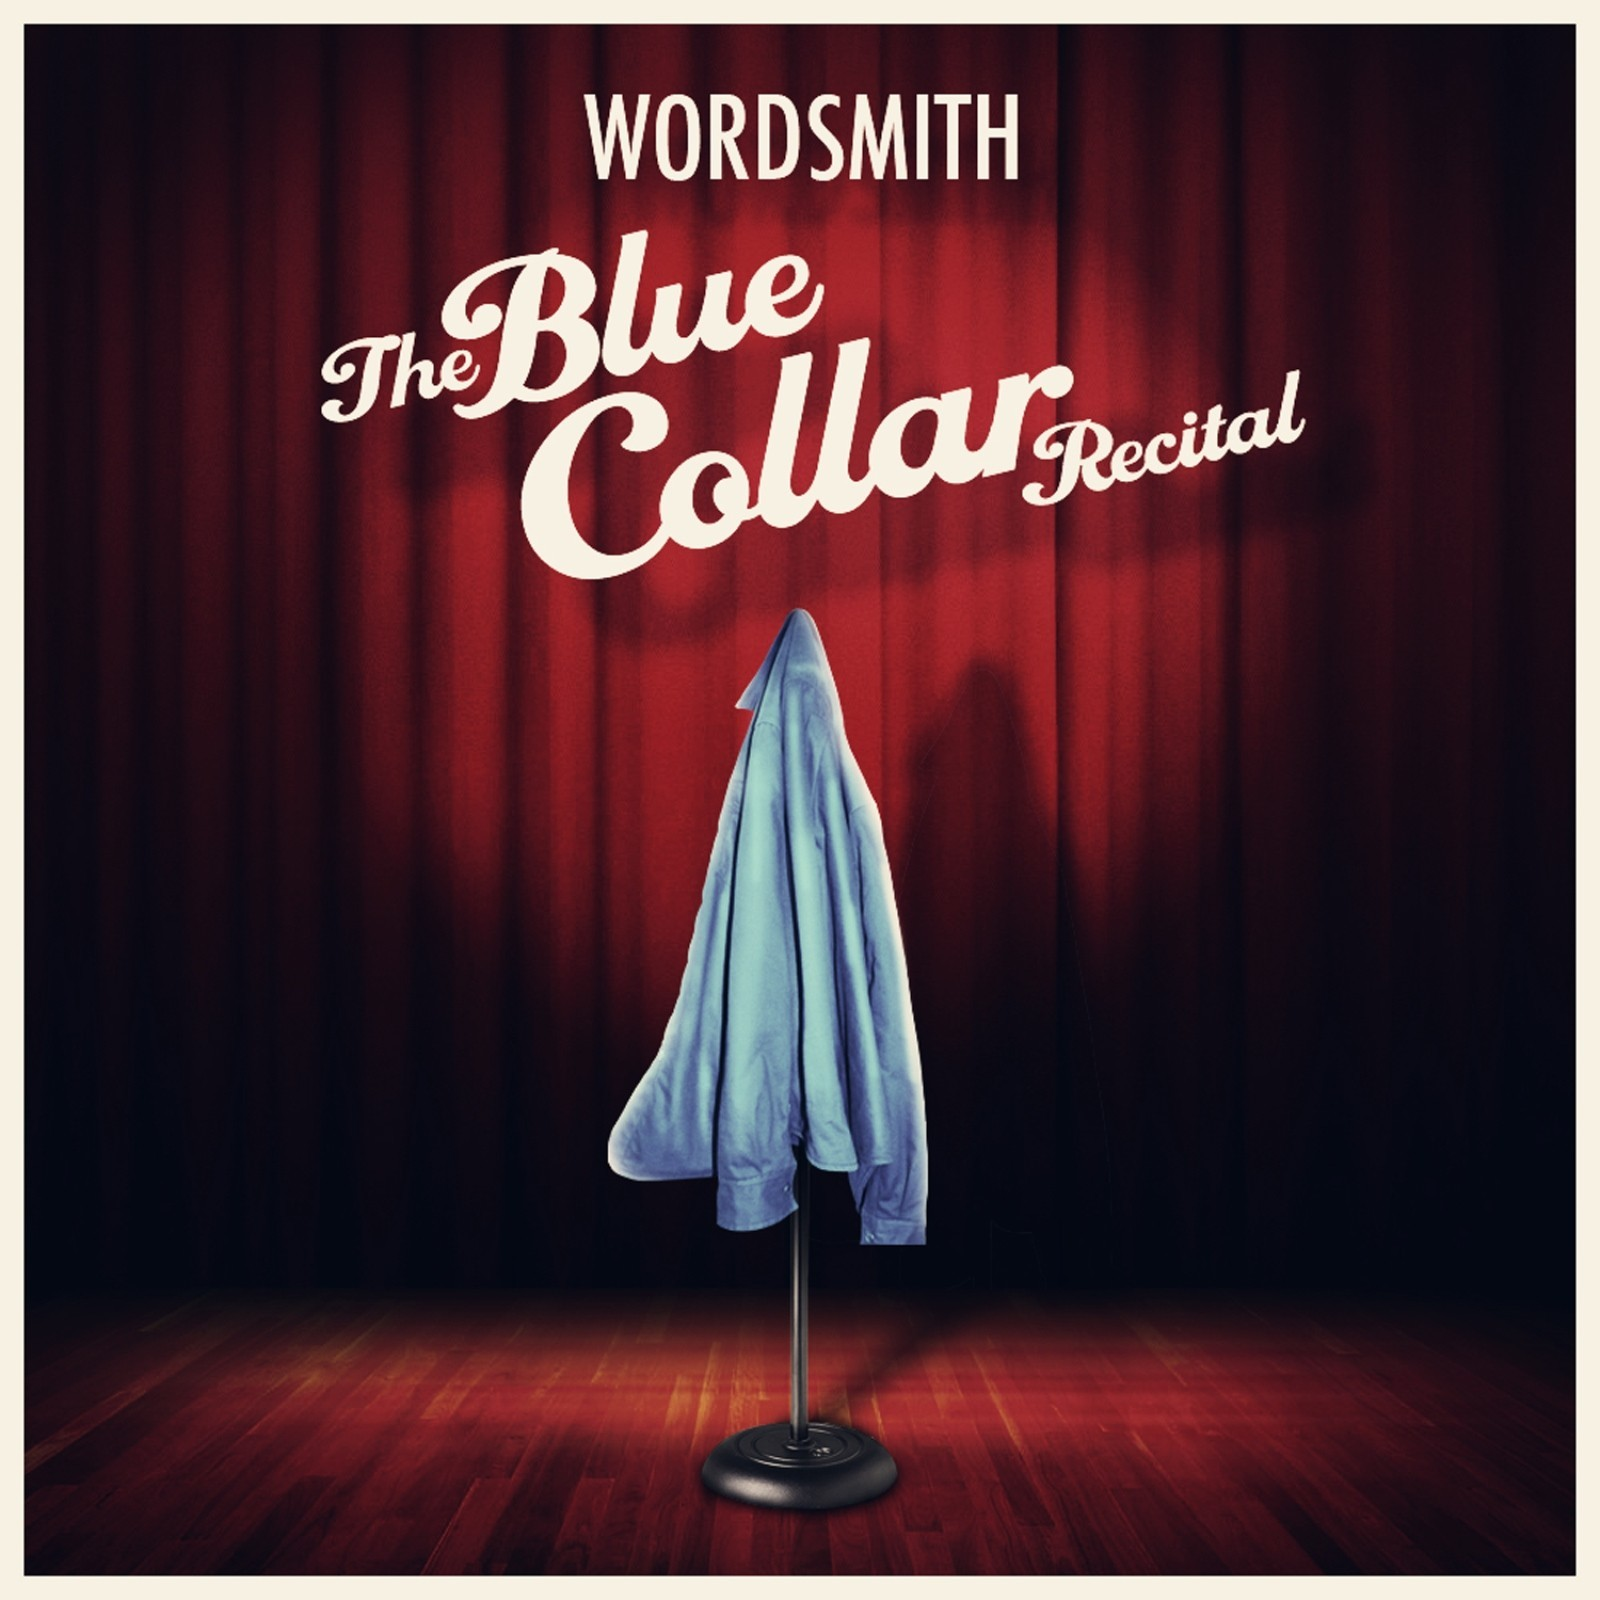 Baltimore album reviews [Pictures] - Wordsmith,